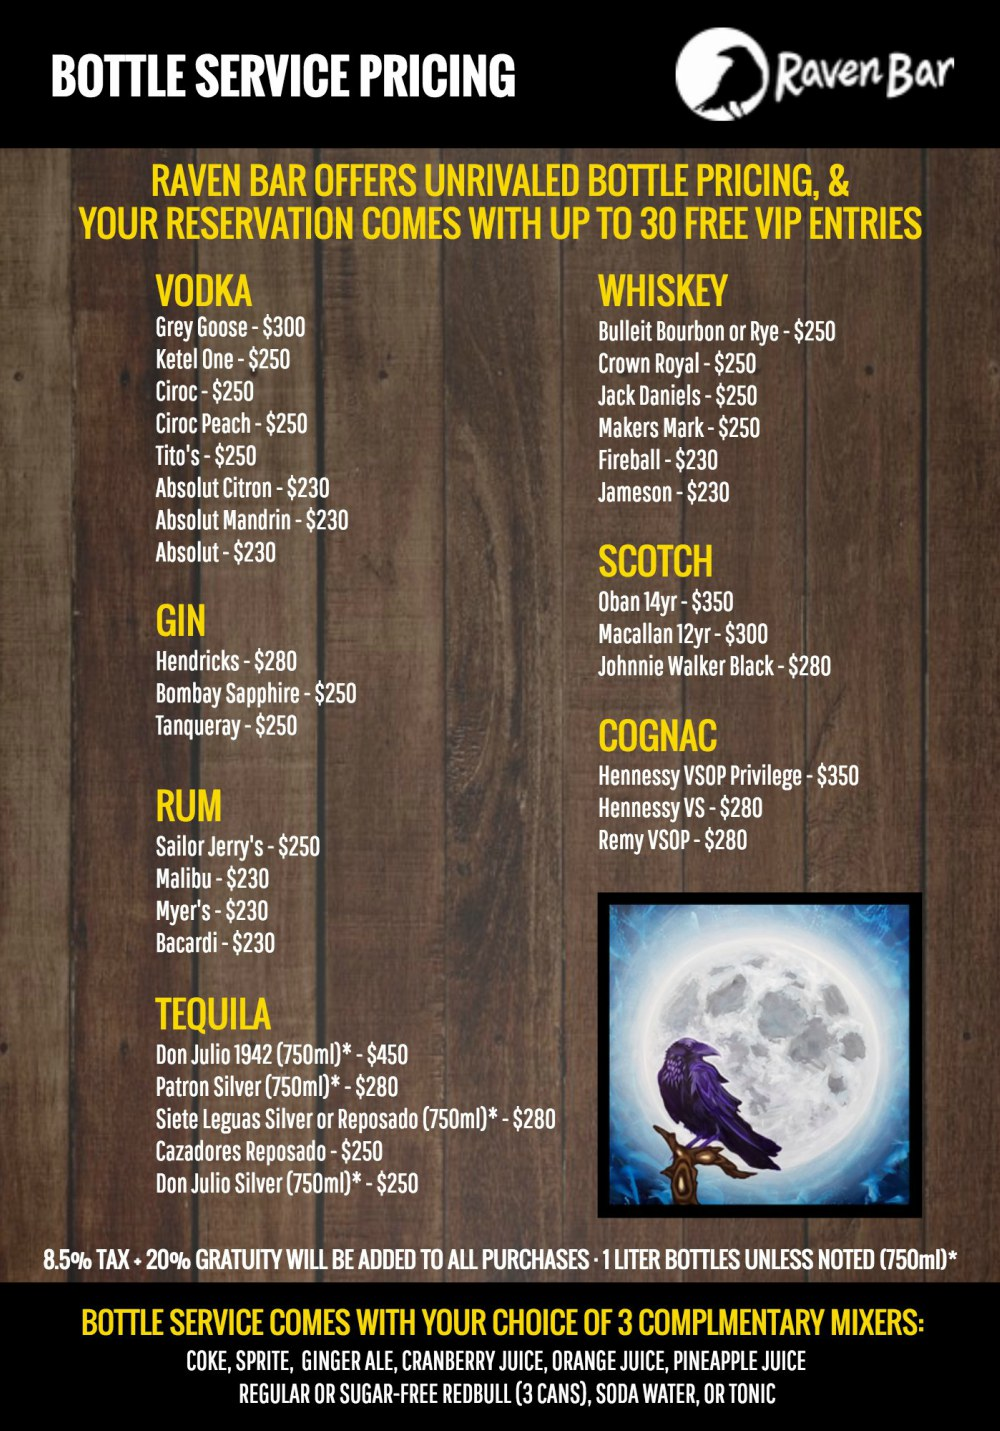 Raven's Bottle Service Menu - Right Click and click Save Image As To Save